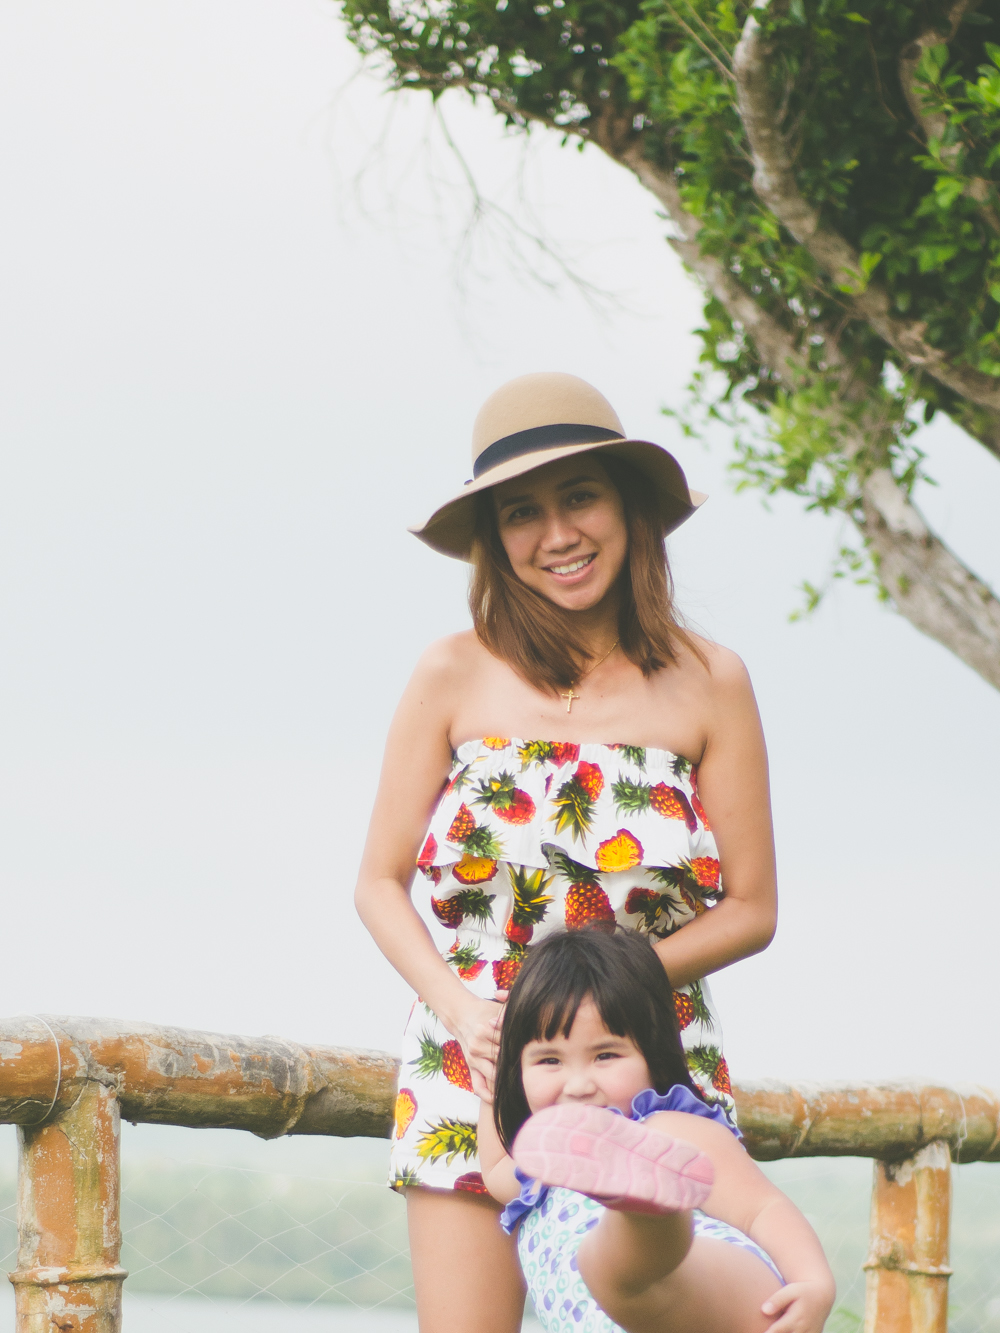 Cebu Fashion Blogger, Cebu Blogger, Co-ords, Co-ord set for women, How to wear co-ords, Cebu Fashion Bloggers, Cebu Bloggers, Lets Stylize, Cebu Summer Destinations, Cebu Beaches, Cebu Destinations, Toni Pino-Oca, Floppy hat, pineapple prints, People Footwear